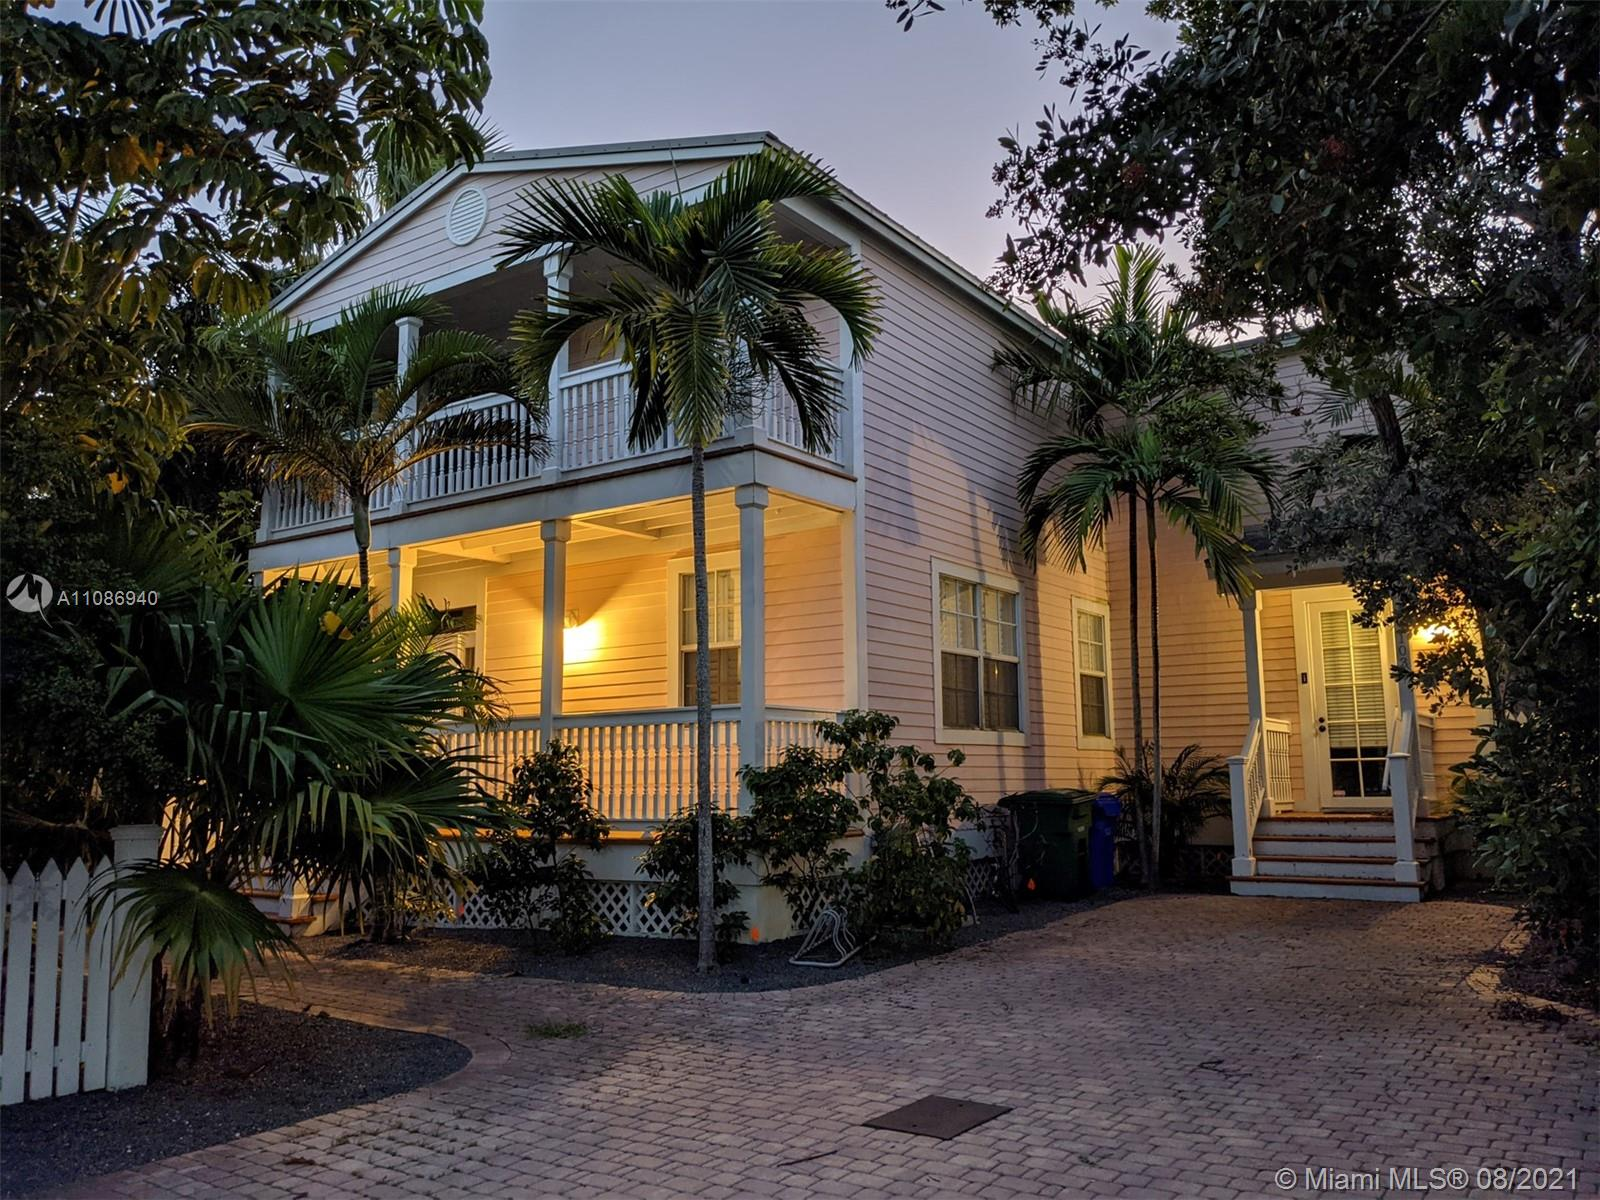 Welcome to Key West... this is the ultimate experience.  Beautiful pink house on quiet cul-de-sac with lovely pool and multiple decks for views. Spacious kitchen and living room that looks up to paradise.  One office/bedroom and full bath downstairs and 3 bedrooms and 2 bathrooms upstairs, large master bedroom/bathroom. Ernest Heminway would have wrote in and came out with a master piece.  Do not miss the chance to rewrite history.  Walking distance from shopping, restaurants and attractions.